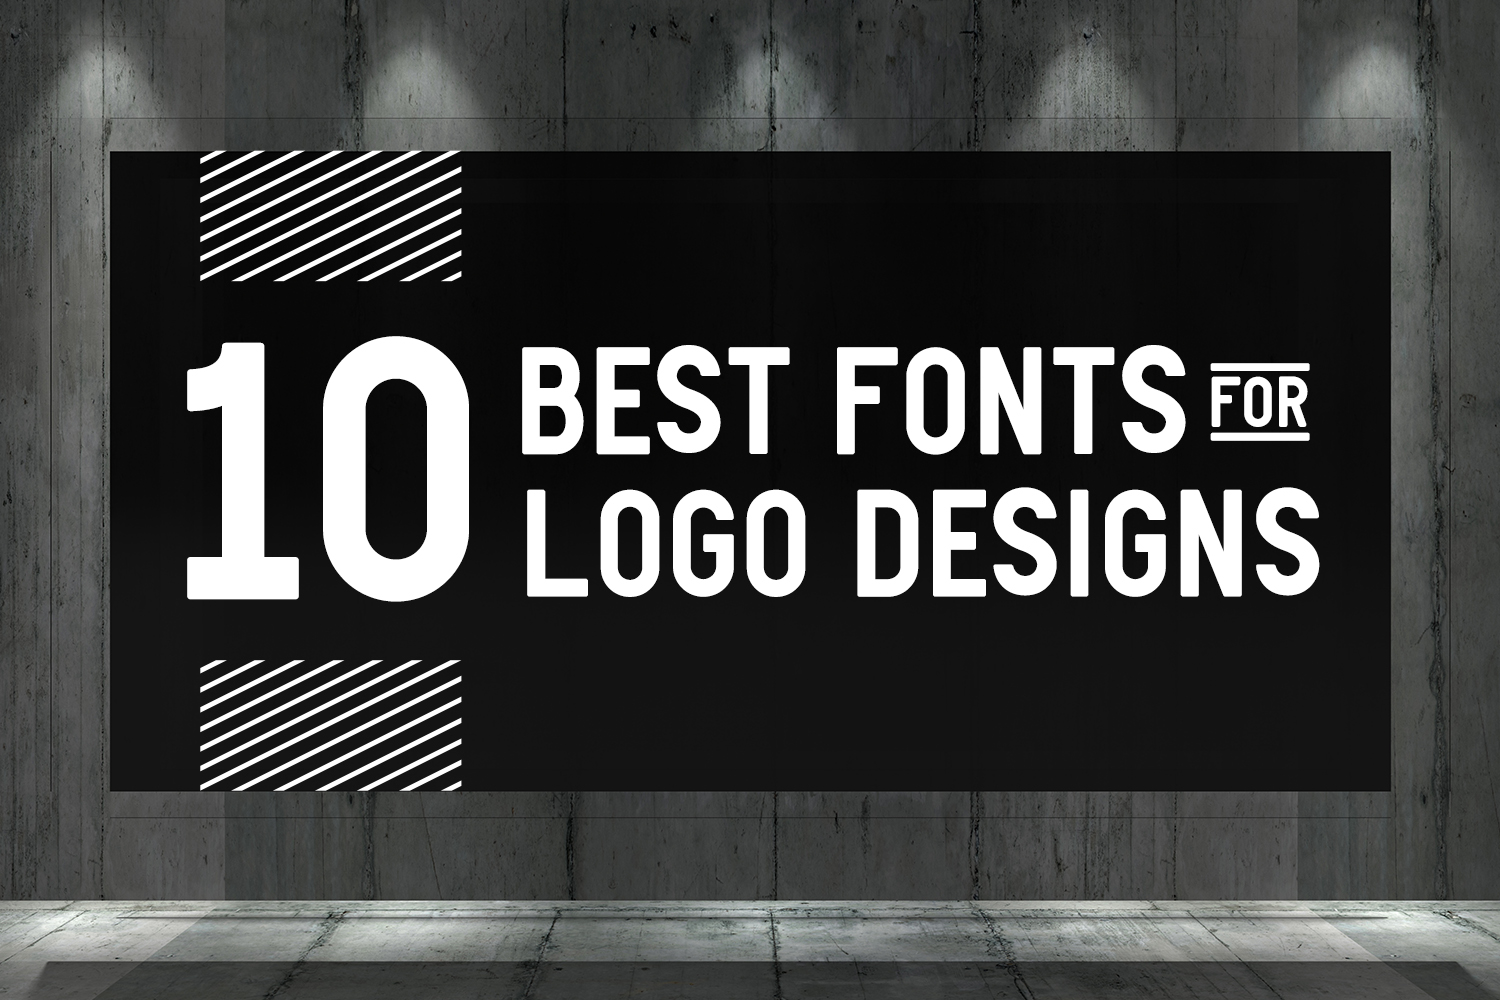 10 Best Fonts for Logo Designs